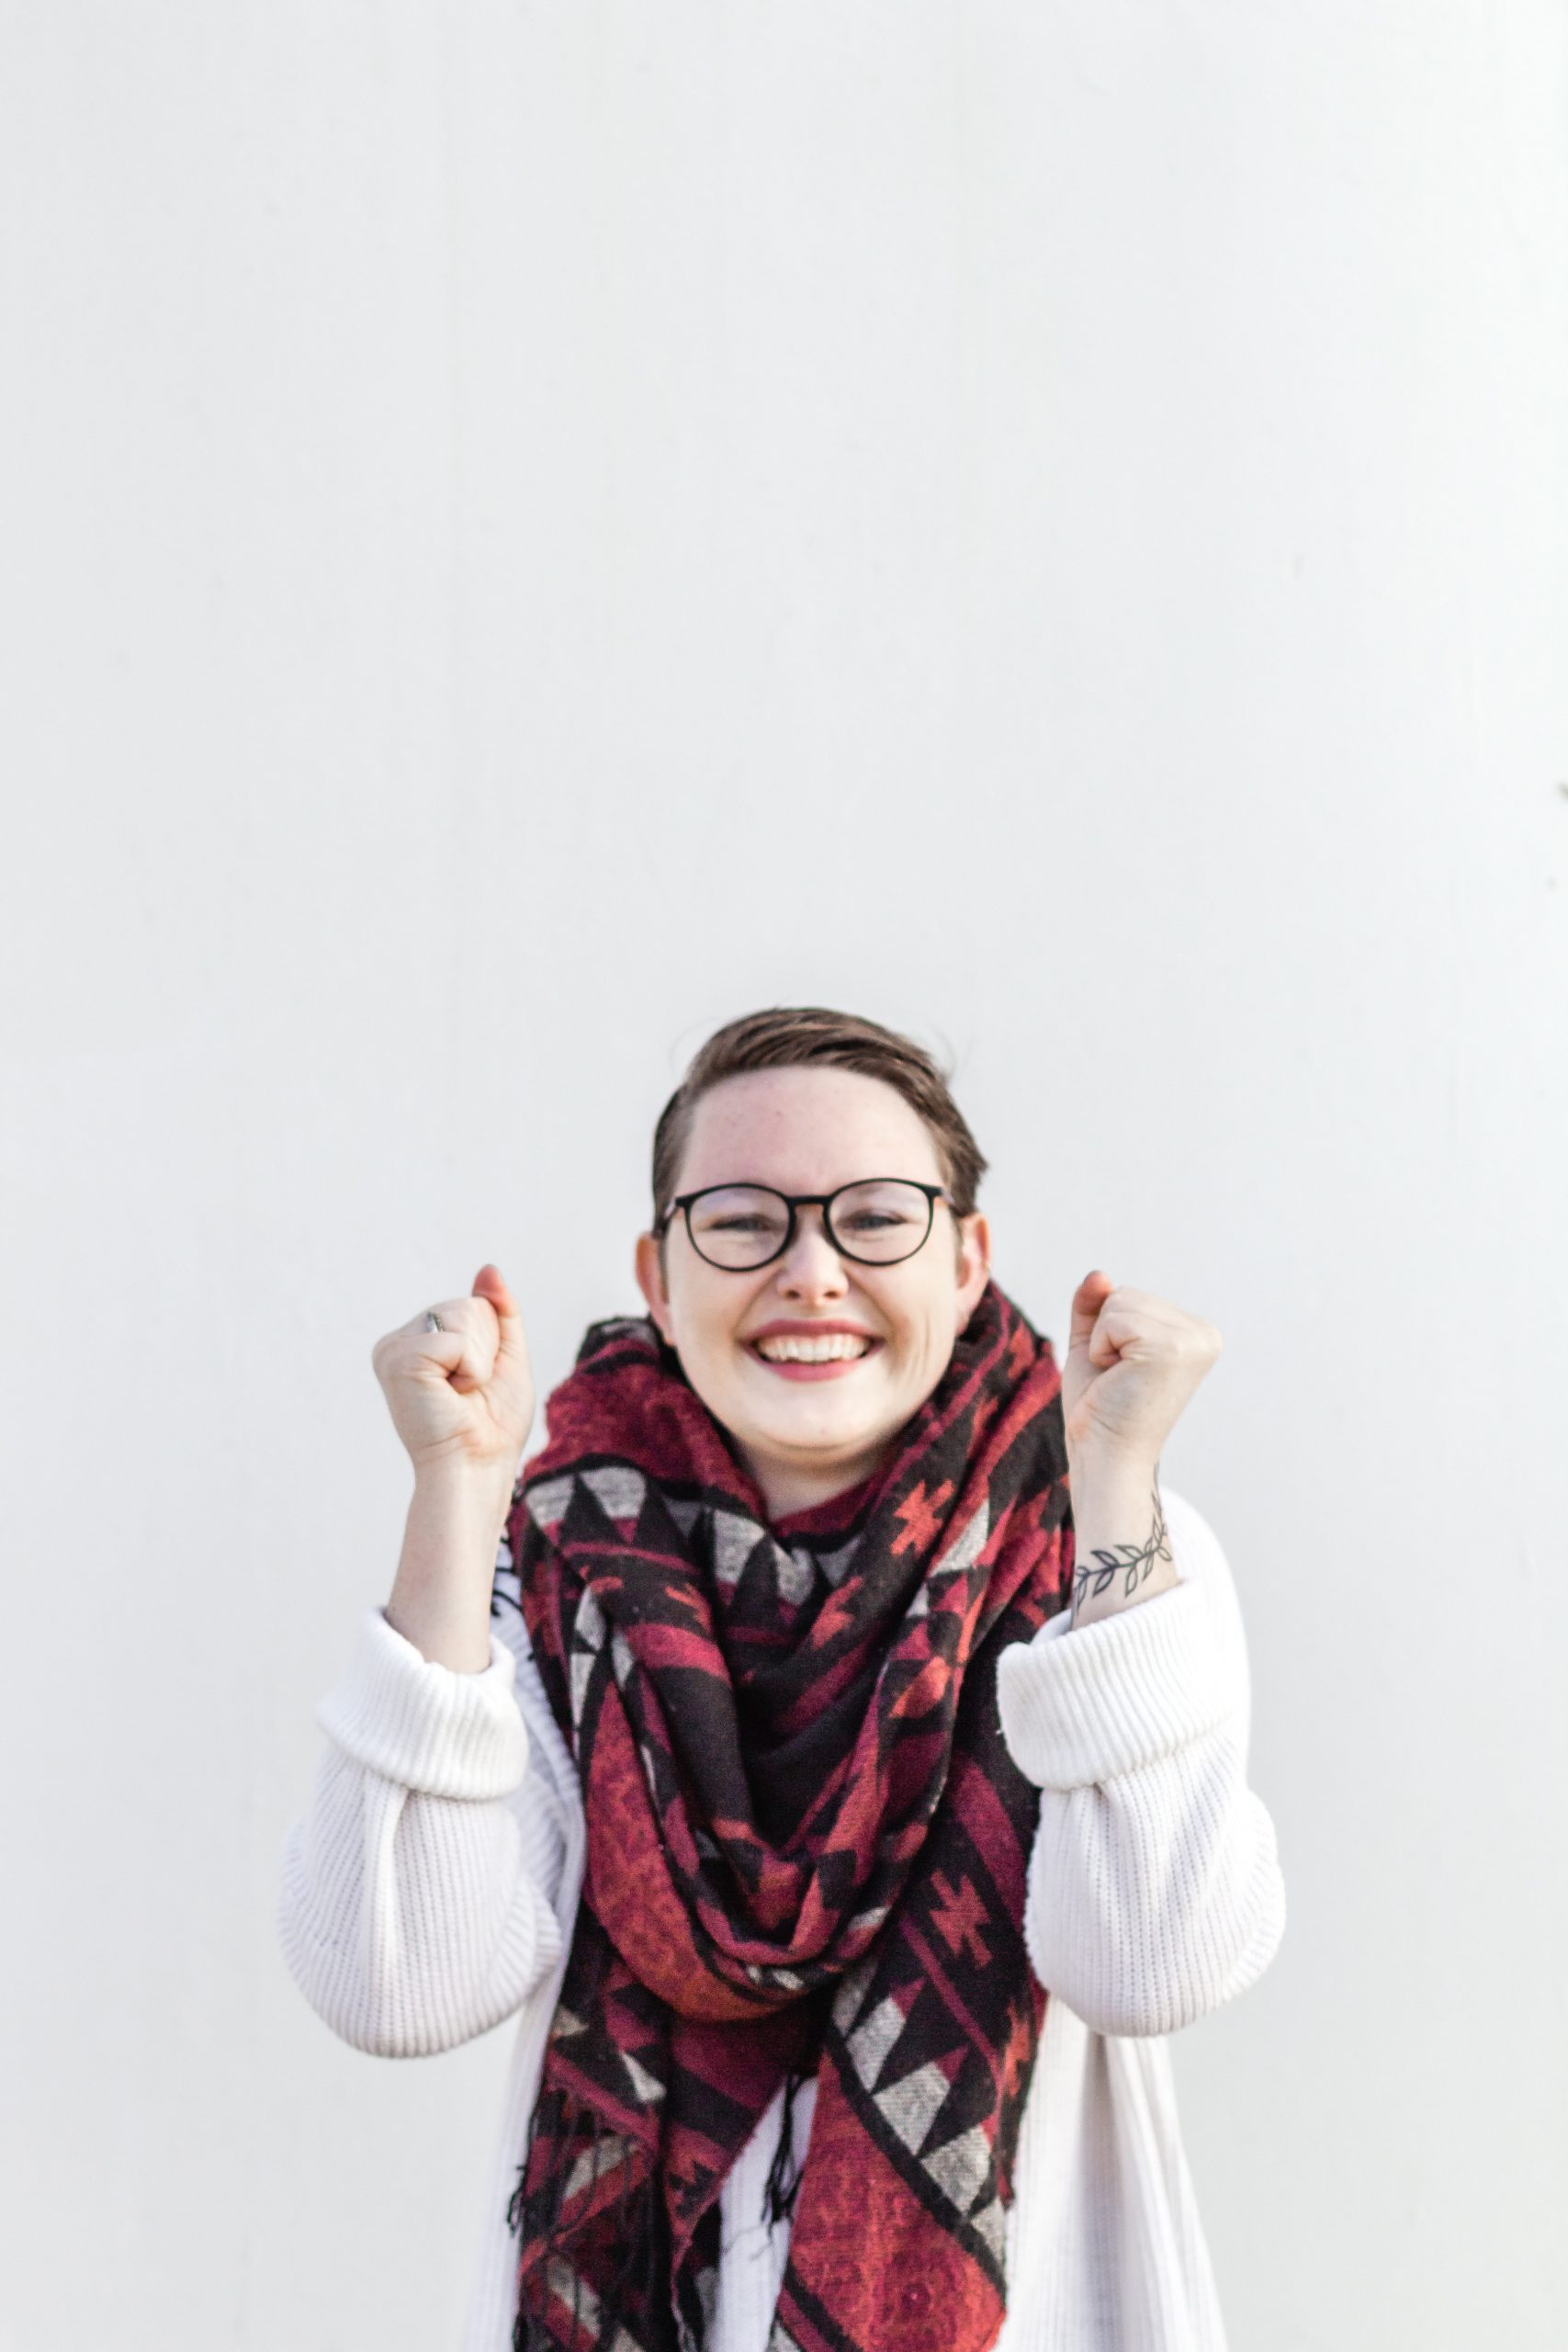 Happy lady showing the joy that comes from learning how to manage anxiety.